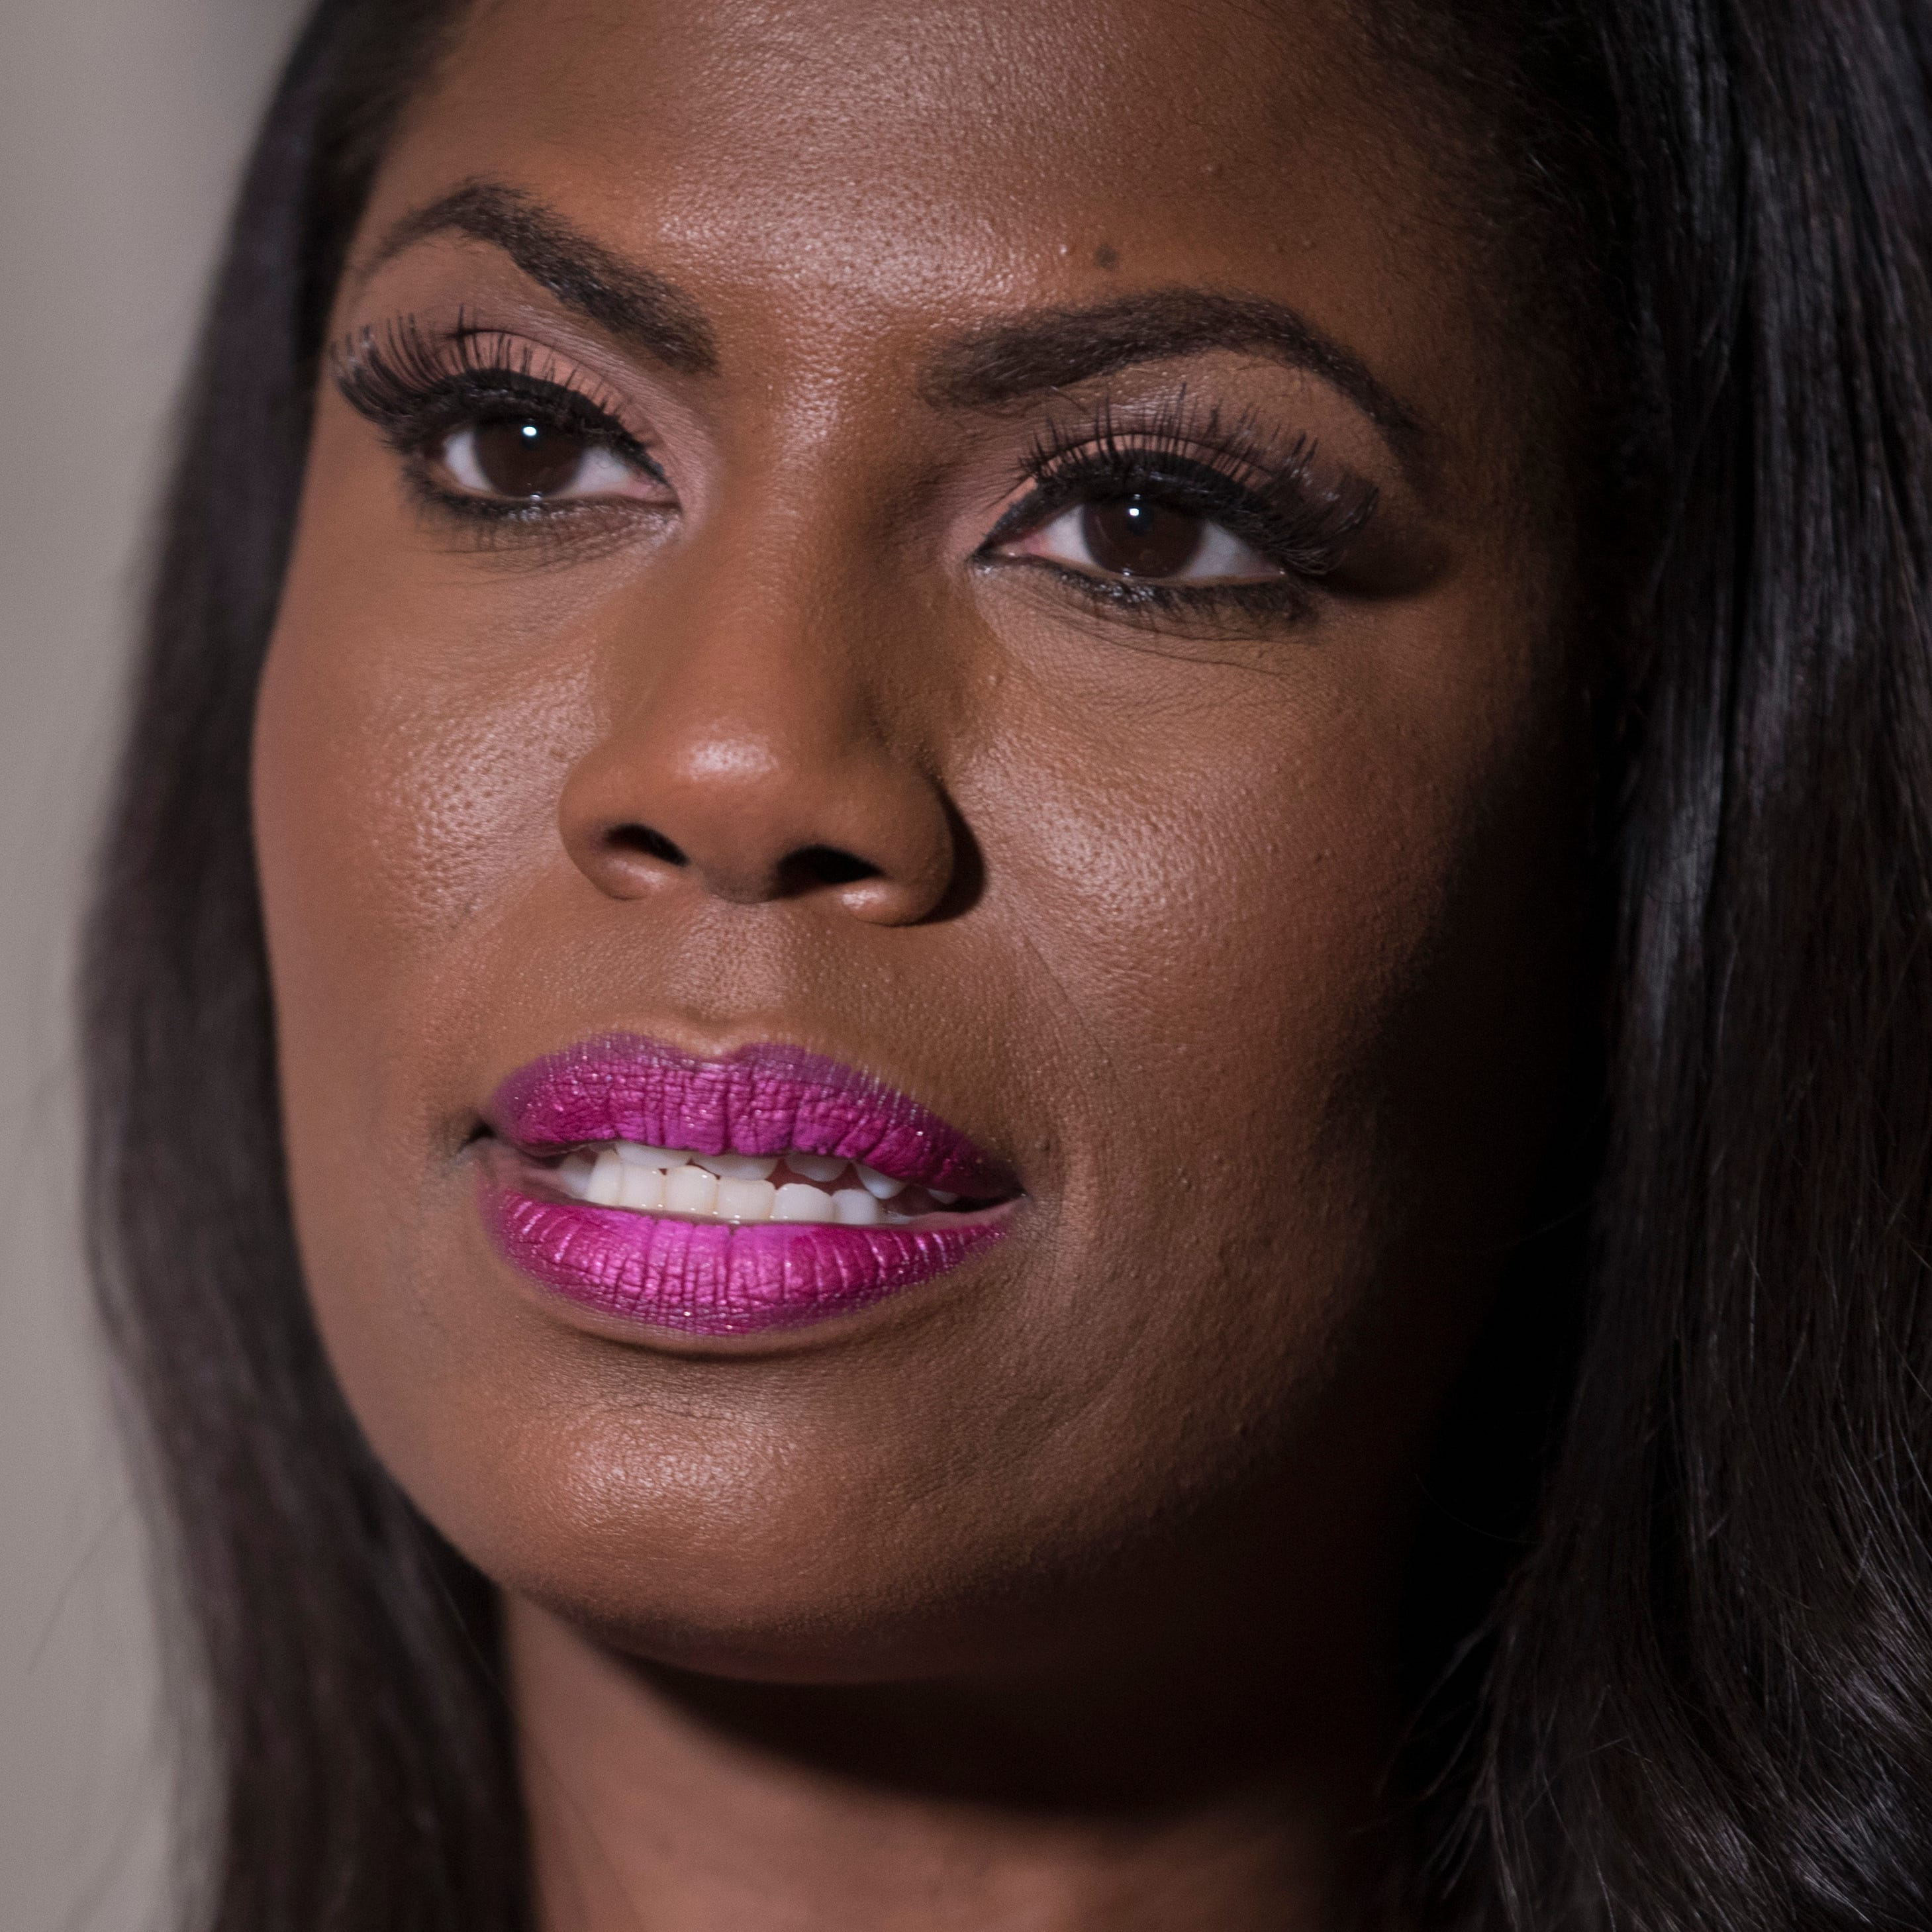 Omarosa Manigault Newman during an interview with The Associated Press, Aug. 14, 2018, in New York.